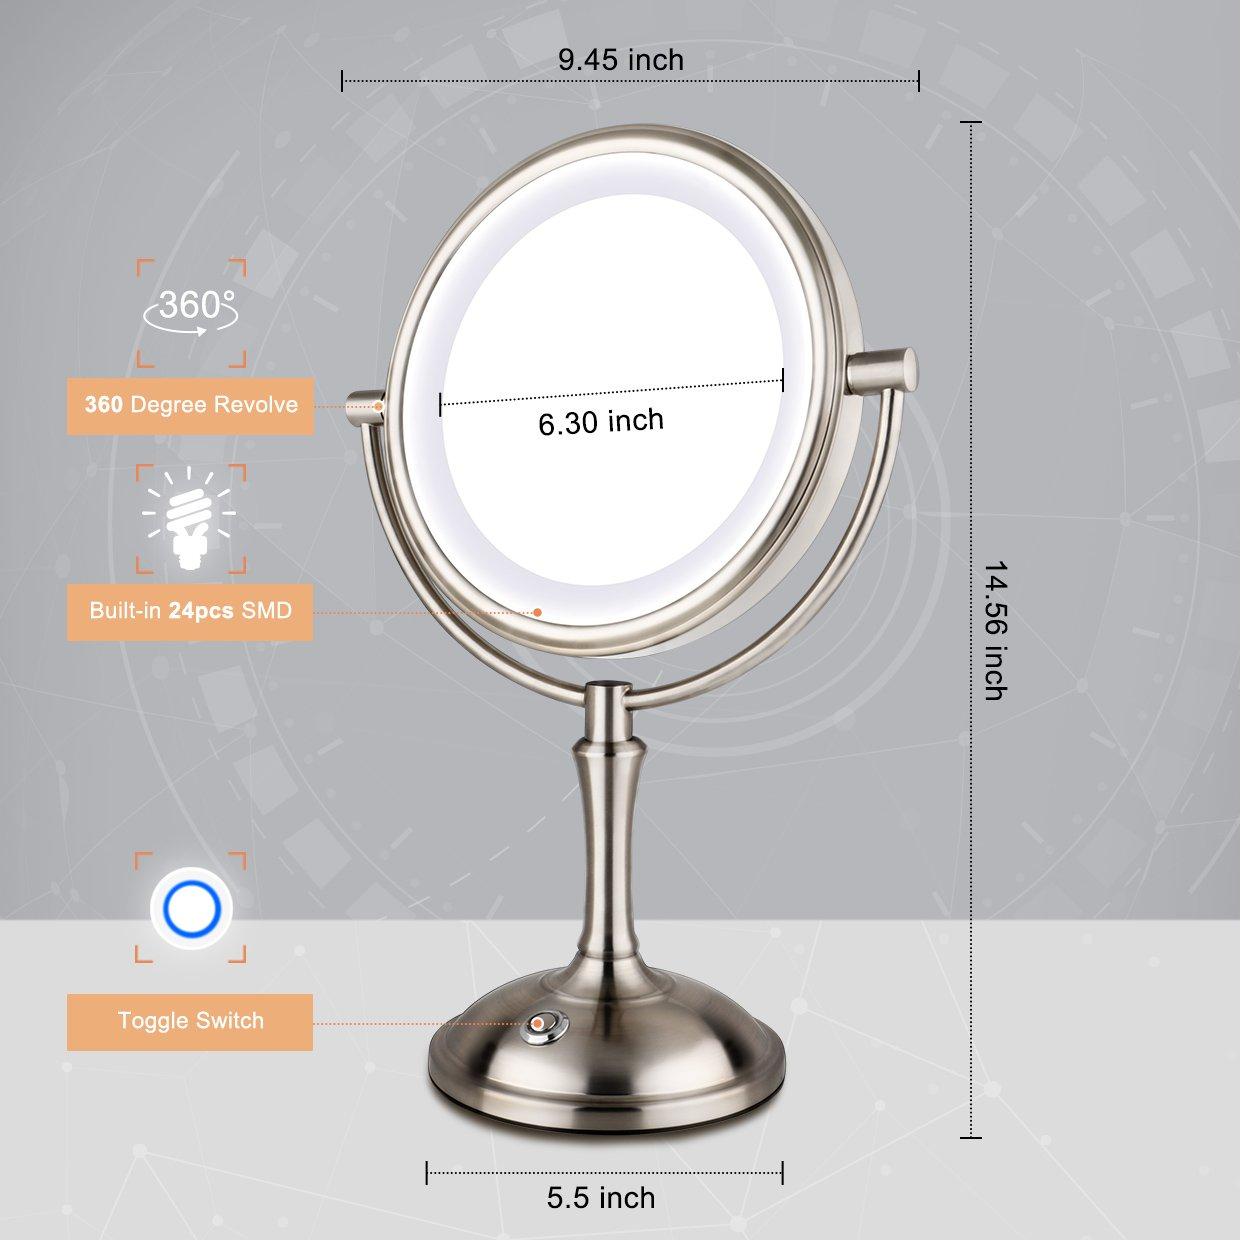 AmnoAmno LED Makeup Mirror-10x Magnifying,7.8'' Double Sided Lighted Vanity Makeup Mirror with Stand, Touch Button Adjustable Light,USB,AC Adapter or Battery Operated-Cord or Cordless